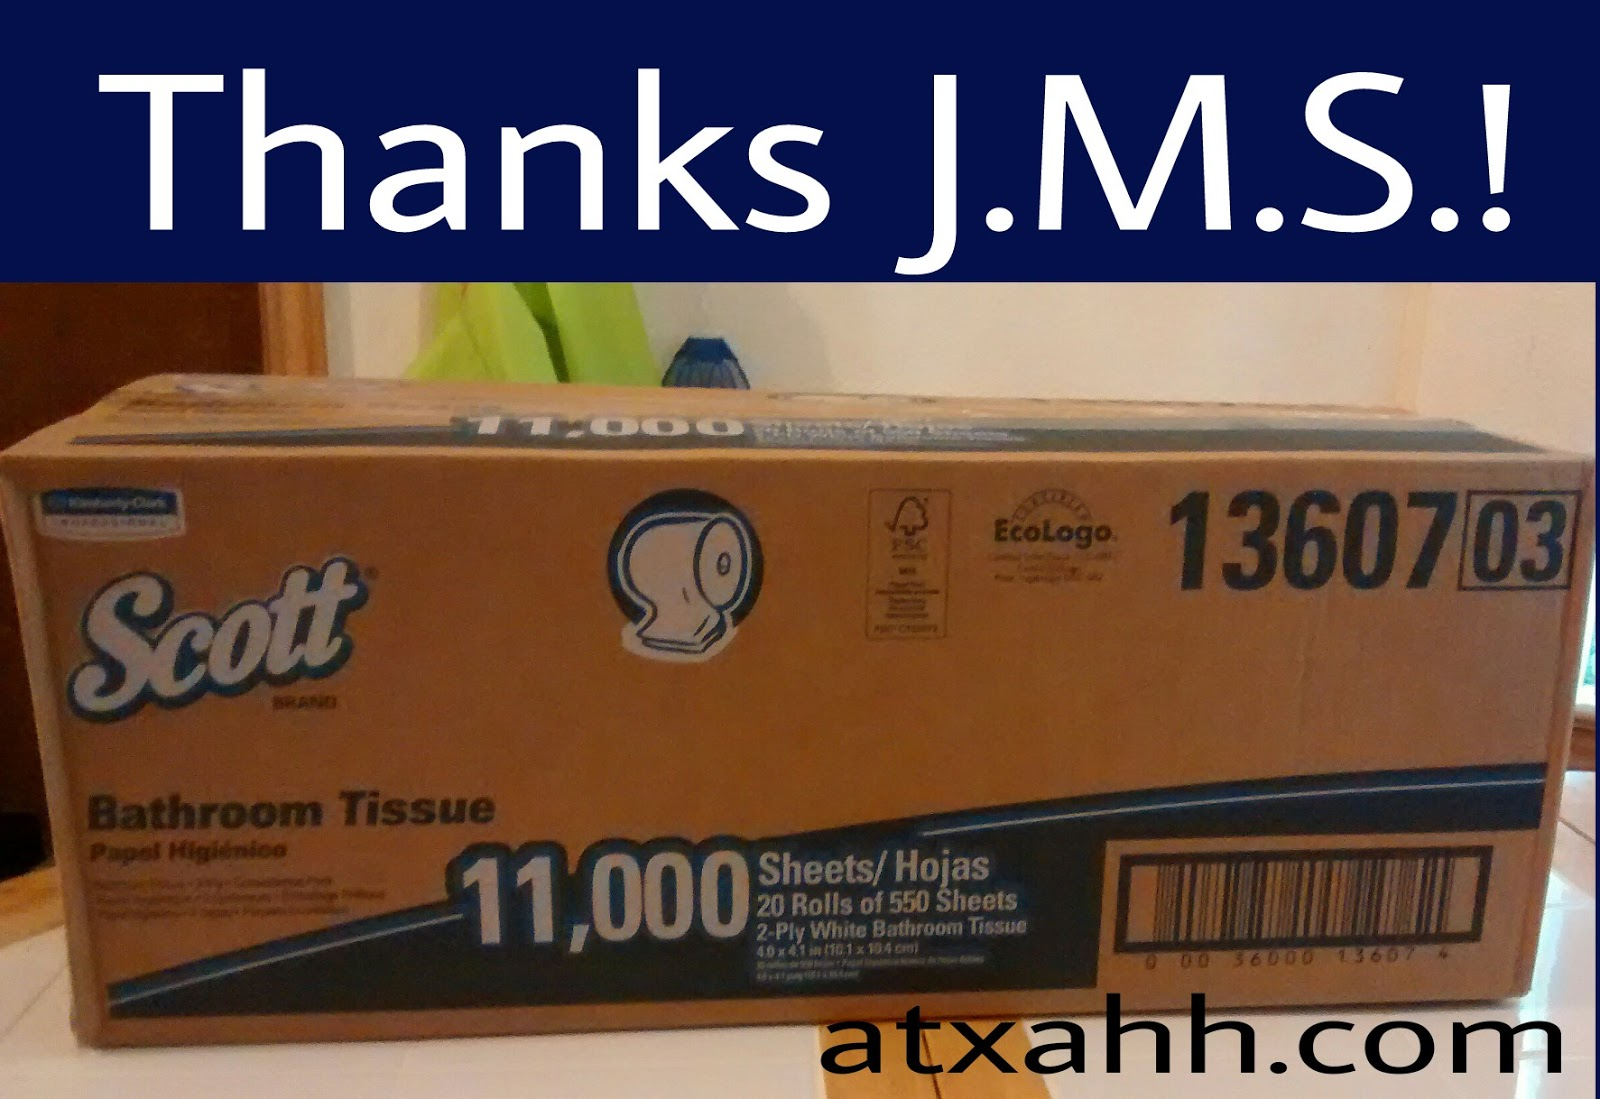 TY donor JMS